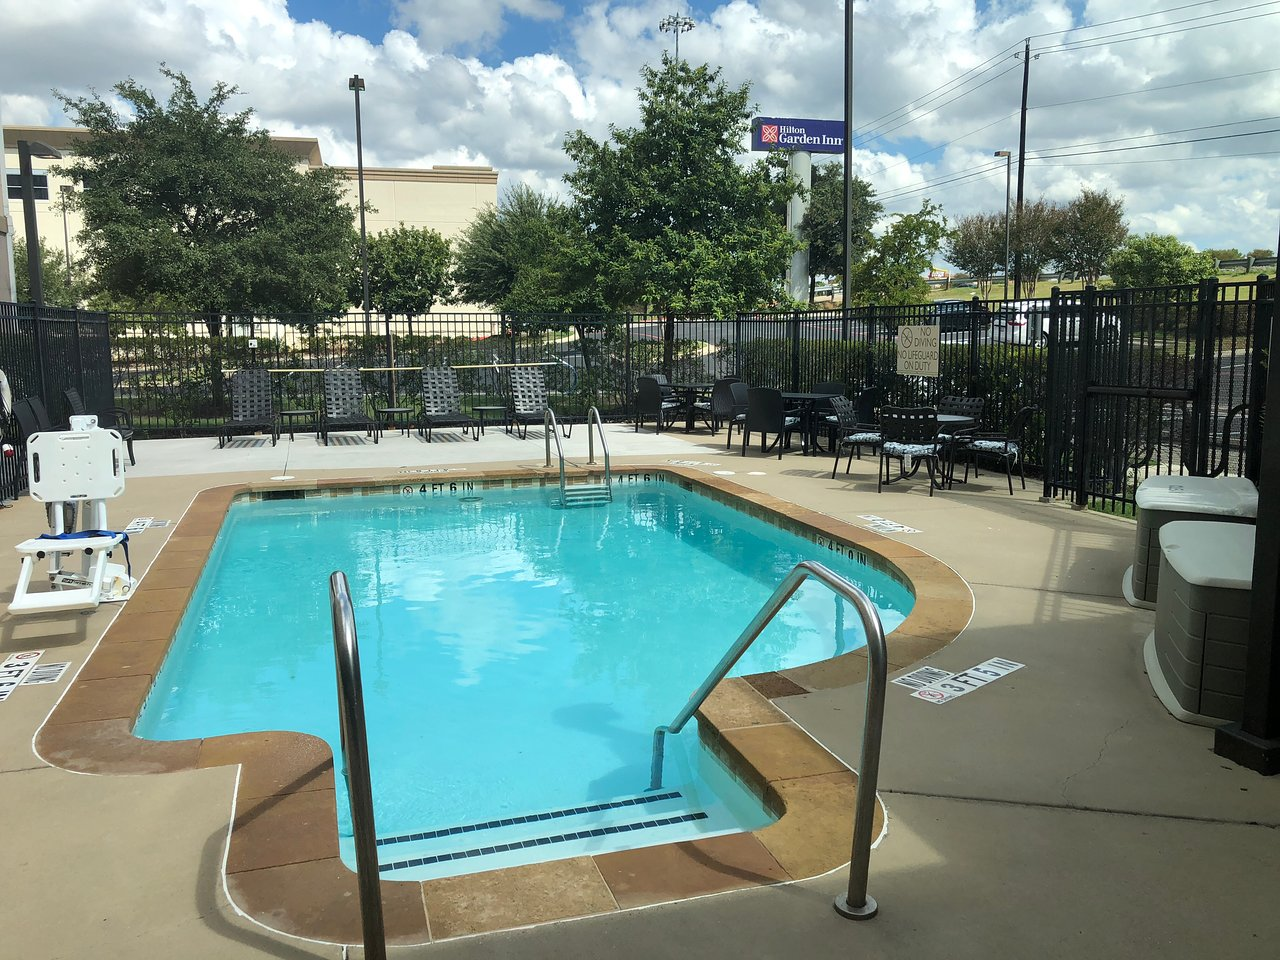 hilton garden inn austin north 105 2 3 0 updated 2019 prices rh tripadvisor com